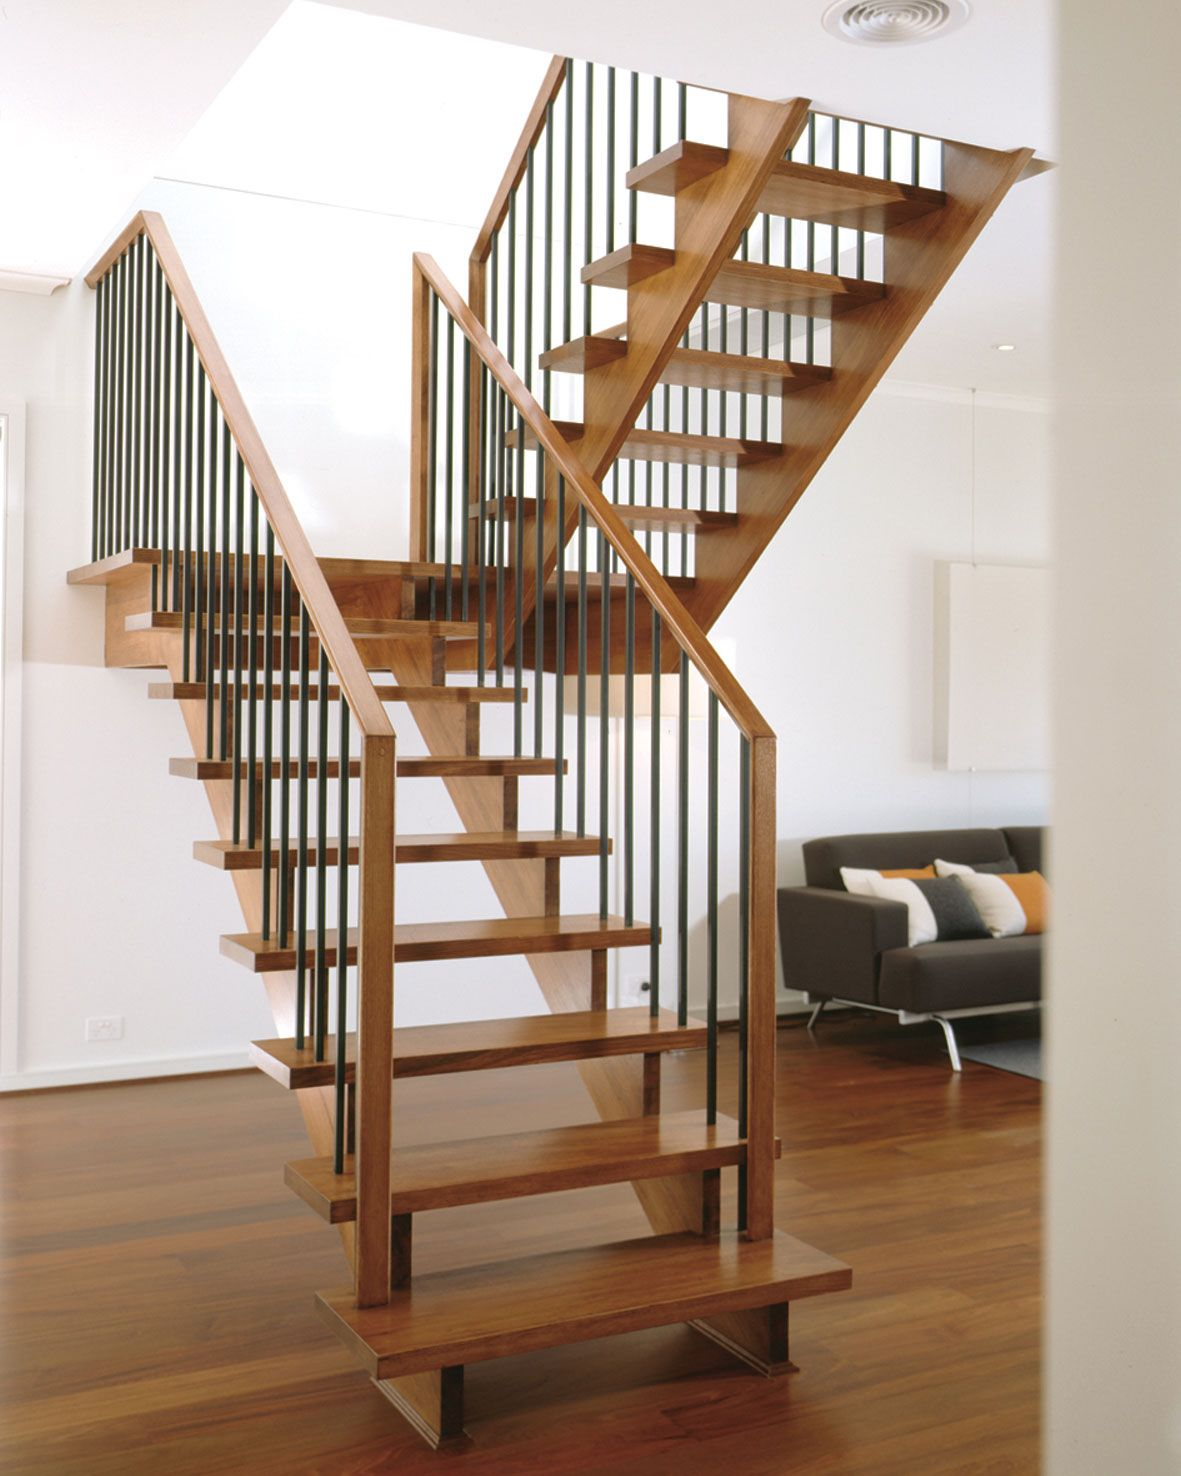 51 Stunning Staircase Design Ideas: Stunning Staircase Designs In Home Interior With Wooden